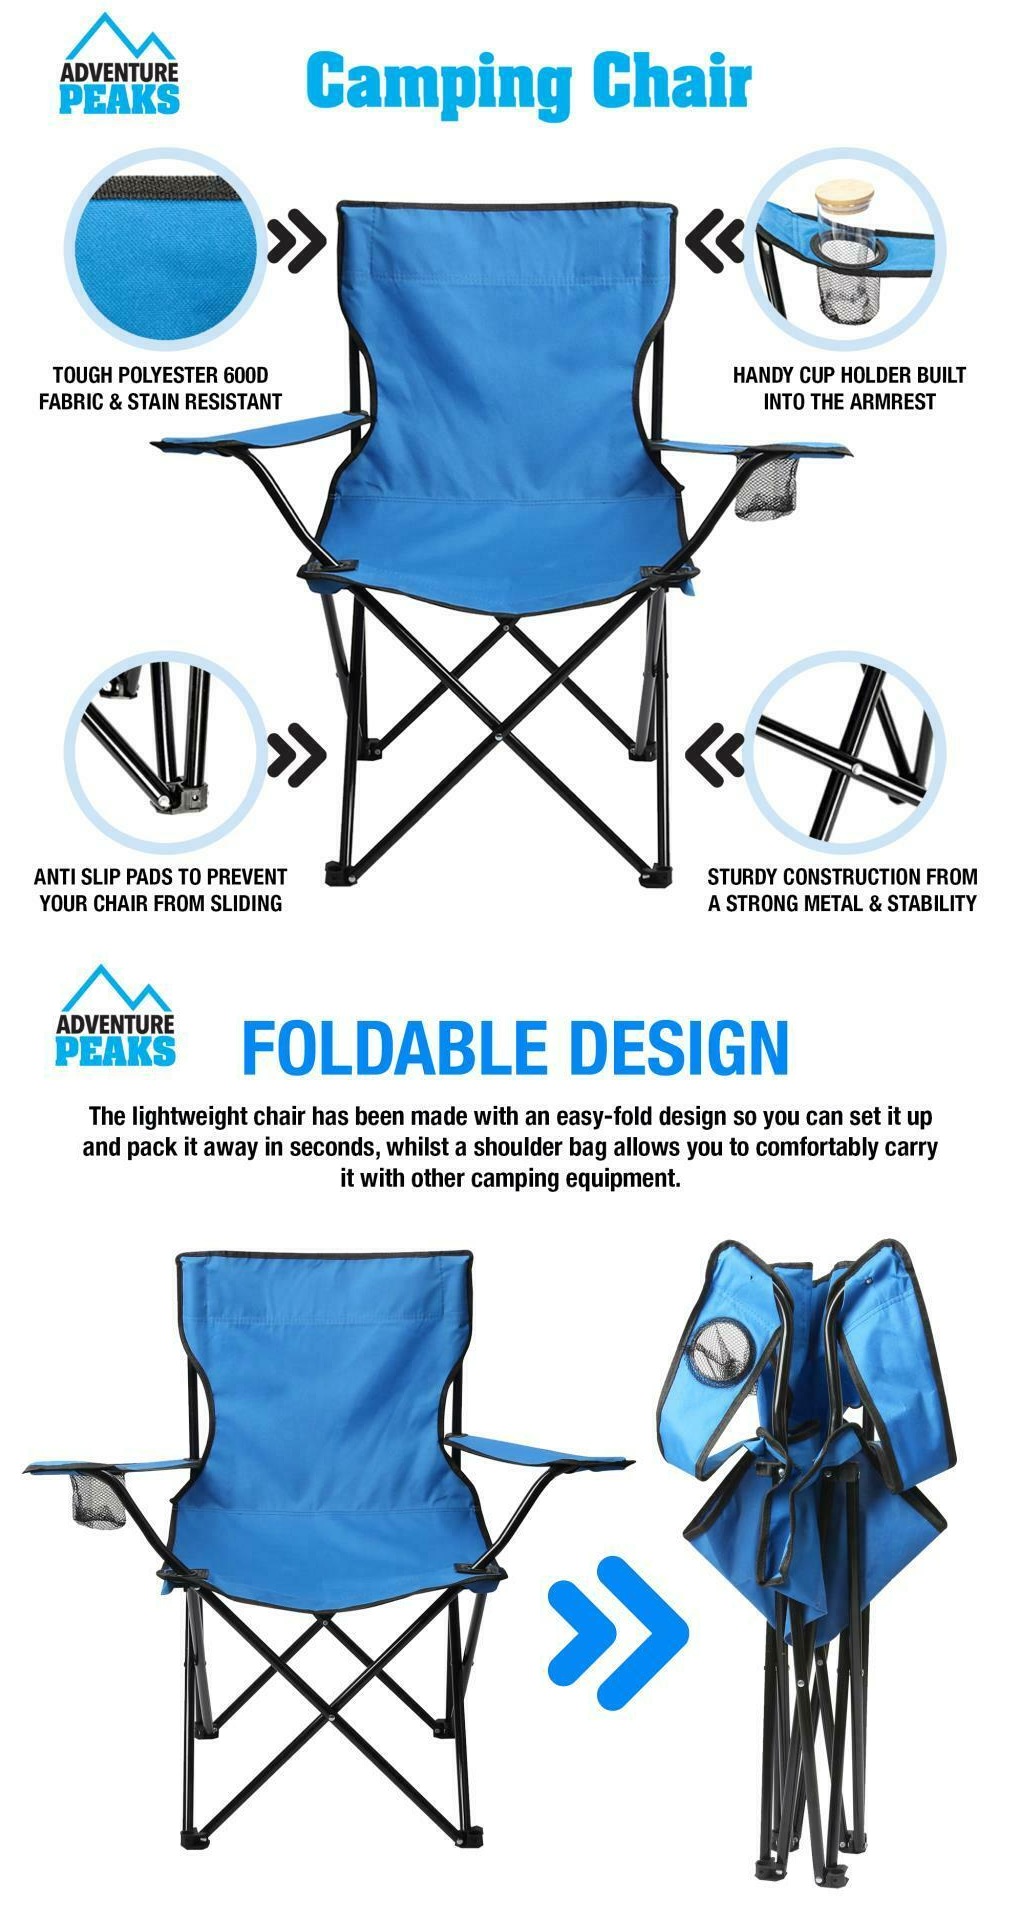 Folding Camping Chairs The lightweight chair made with an easy-fold design Picnic gift gardens garden parties garden games for folds flat Folding FOLDER Foldable Fold-Flat fold festivals festival Euros chairs chair camps Camper camp beachs beaches Camping, Fishing, BBQ, Beach, Garden, Picnics or even Hiking